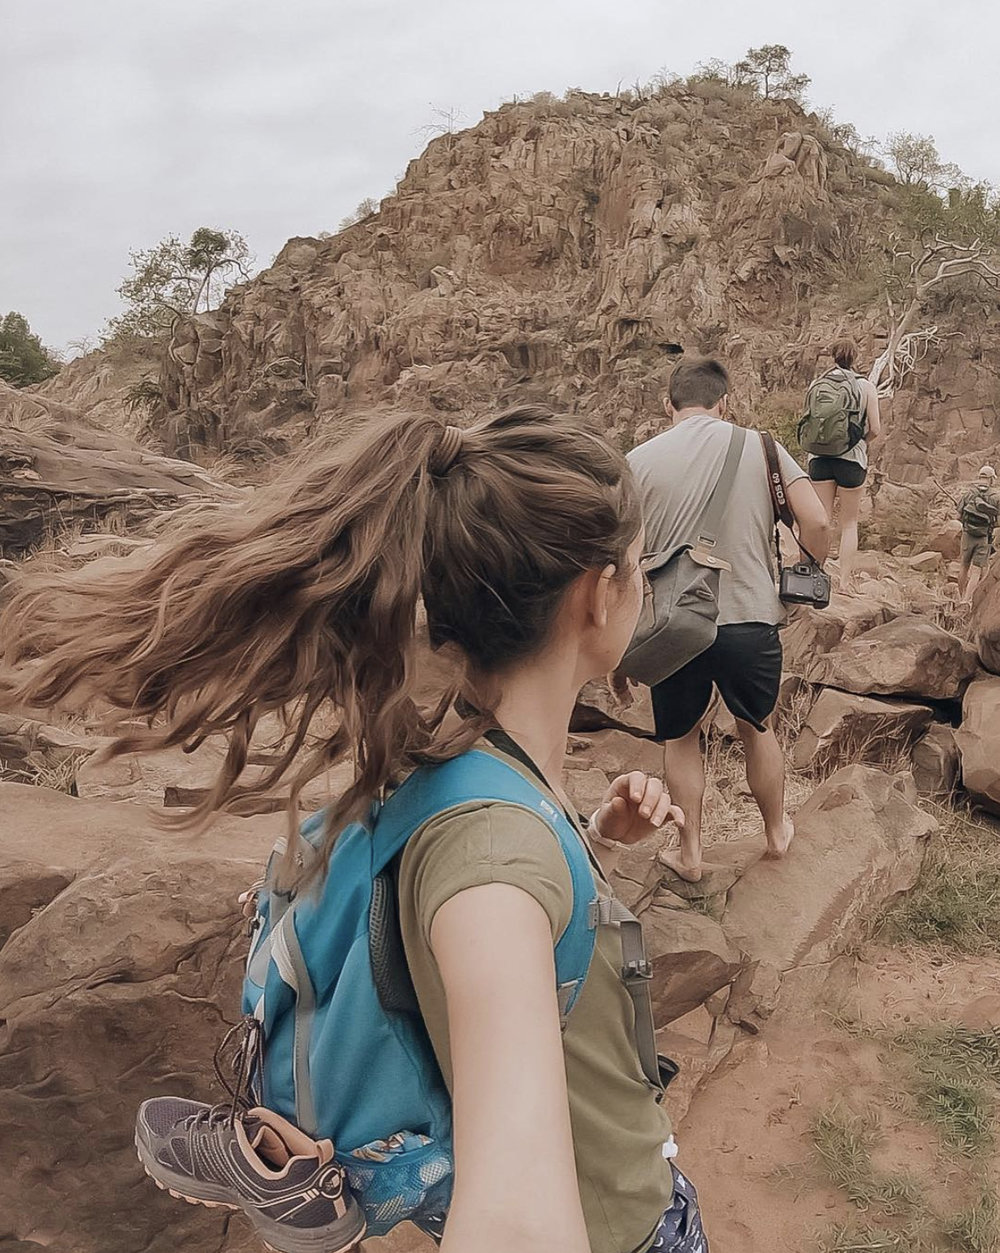 A walking safari is truly a remarkable experience, allowing you to absorb the sights, sounds and smells of the bush in a truly unique way. We love this snap from   @sarahs.trek   from her 5-hour walking safari through Lanner Gorge.